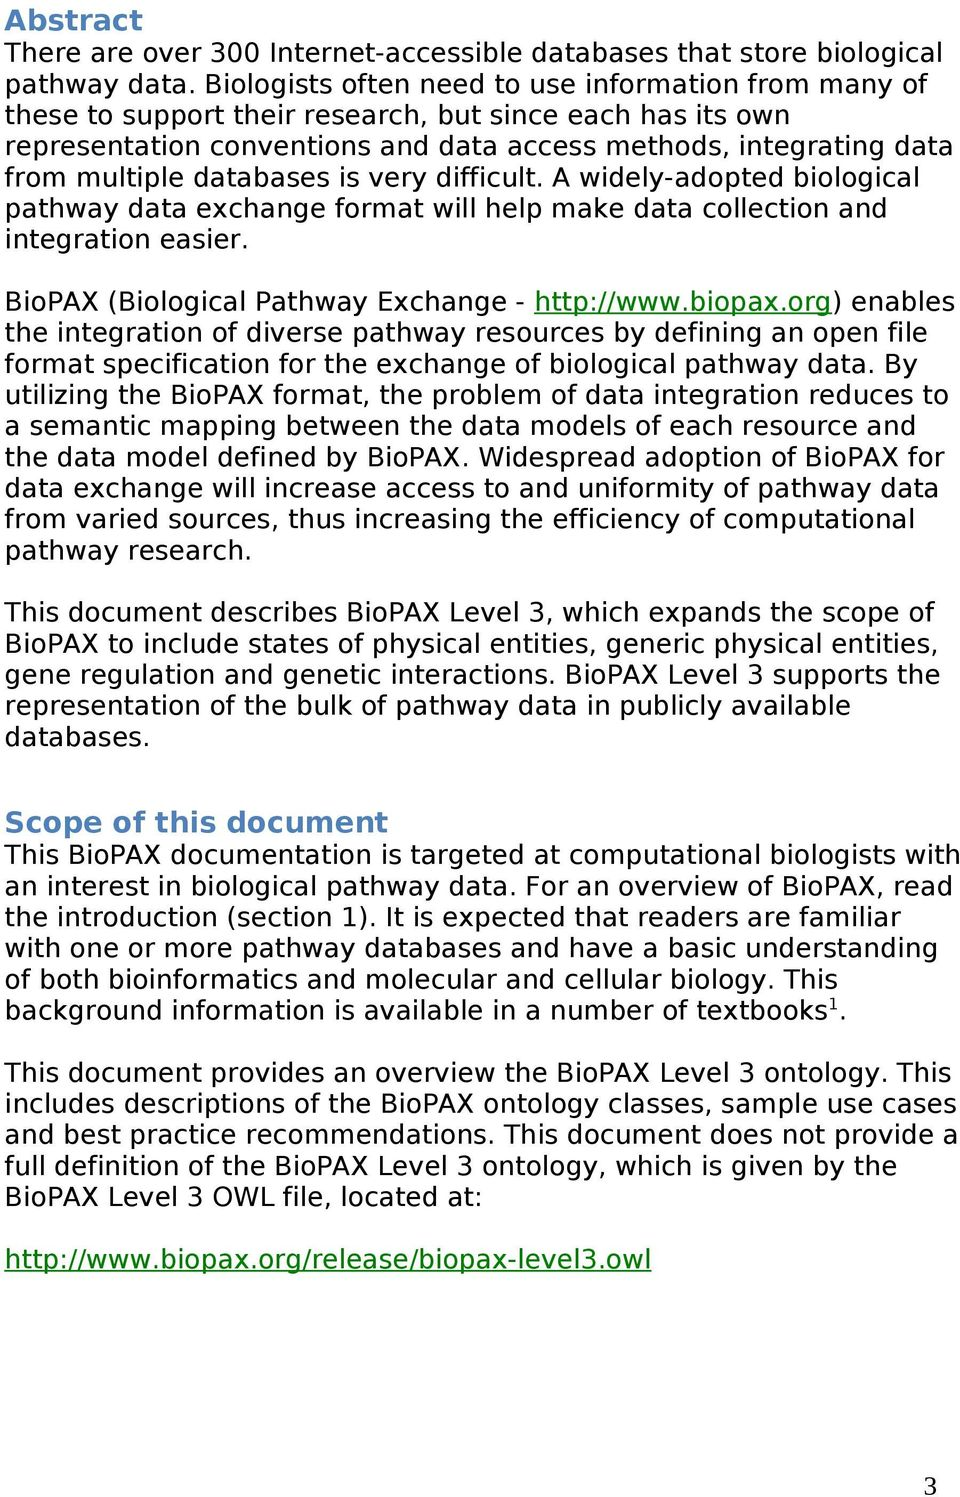 databases is very difficult. A widely-adopted biological pathway data exchange format will help make data collection and integration easier. BioPAX (Biological Pathway Exchange - http://www.biopax.